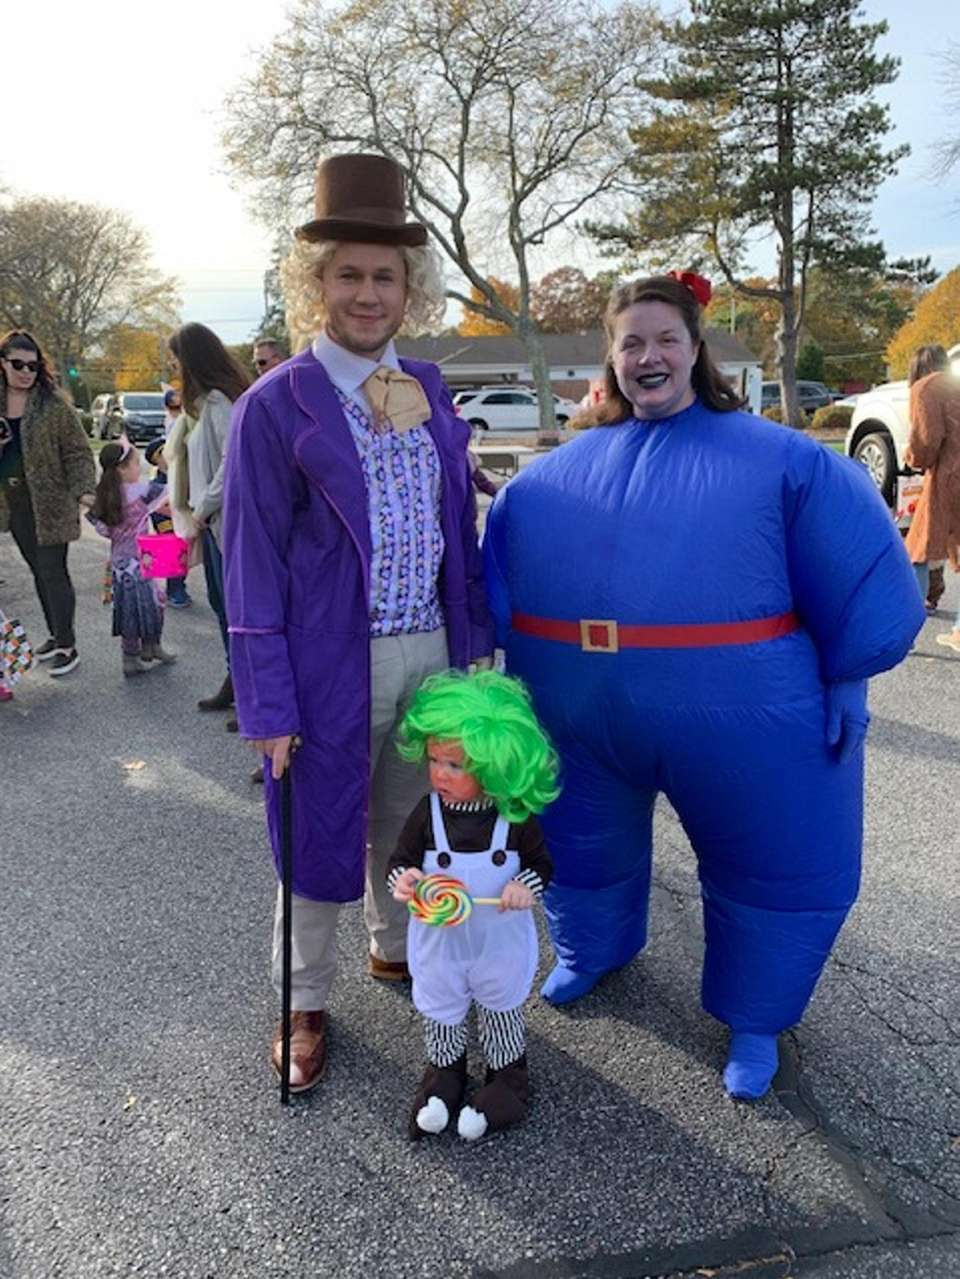 Willy Wonka, Violet and Oompa Loompa at the